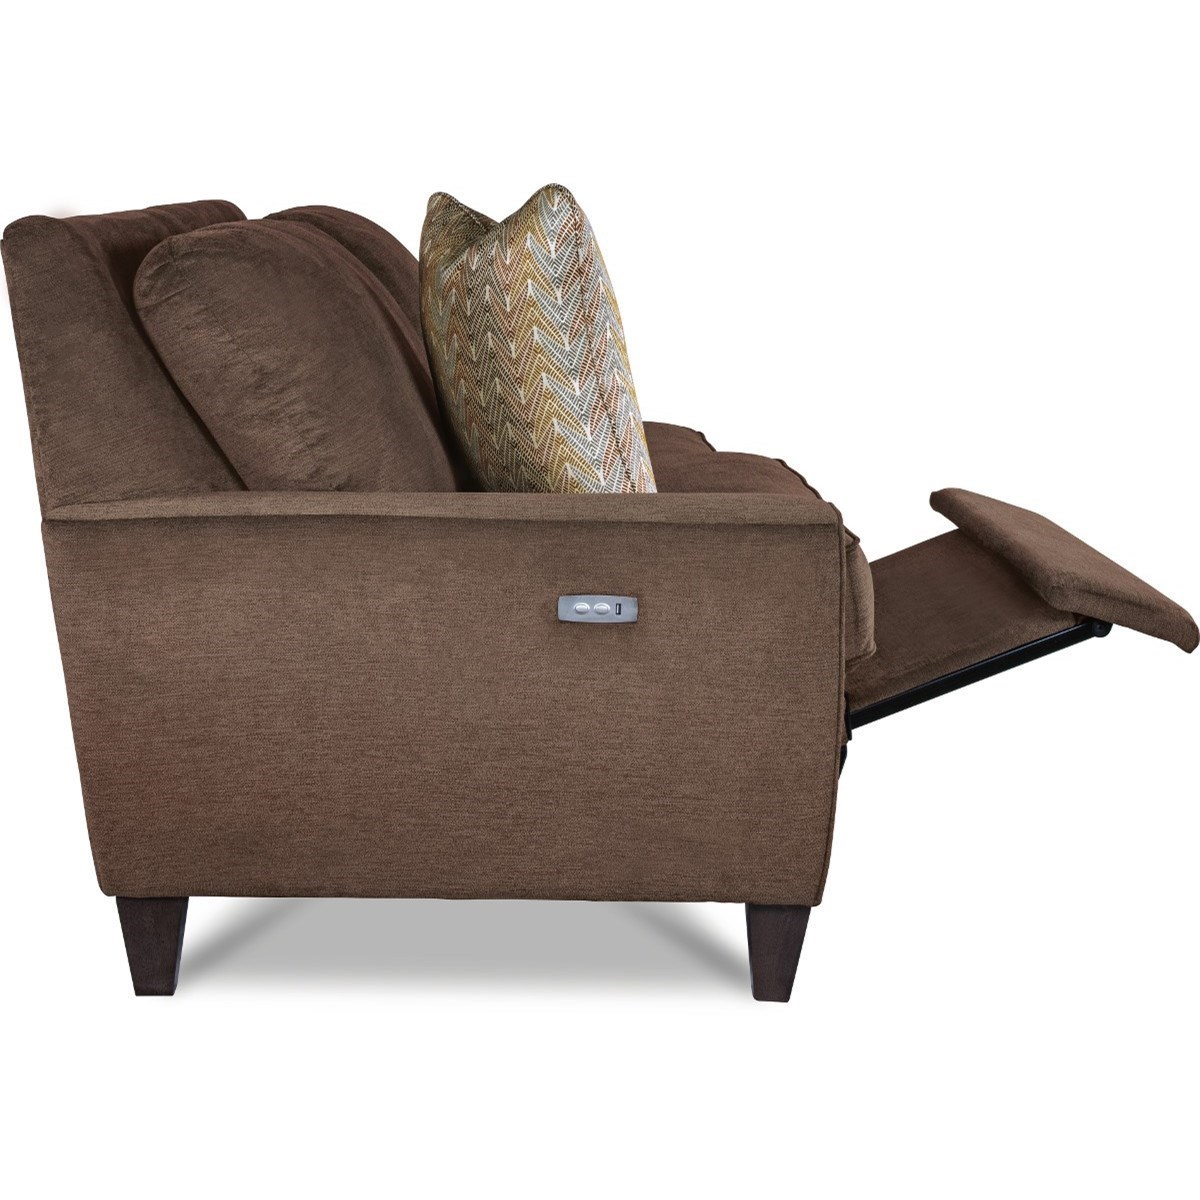 broyhill sofa prices slipcover for leather uk la-z-boy edie duo™ reclining chair and a half | conlin's ...